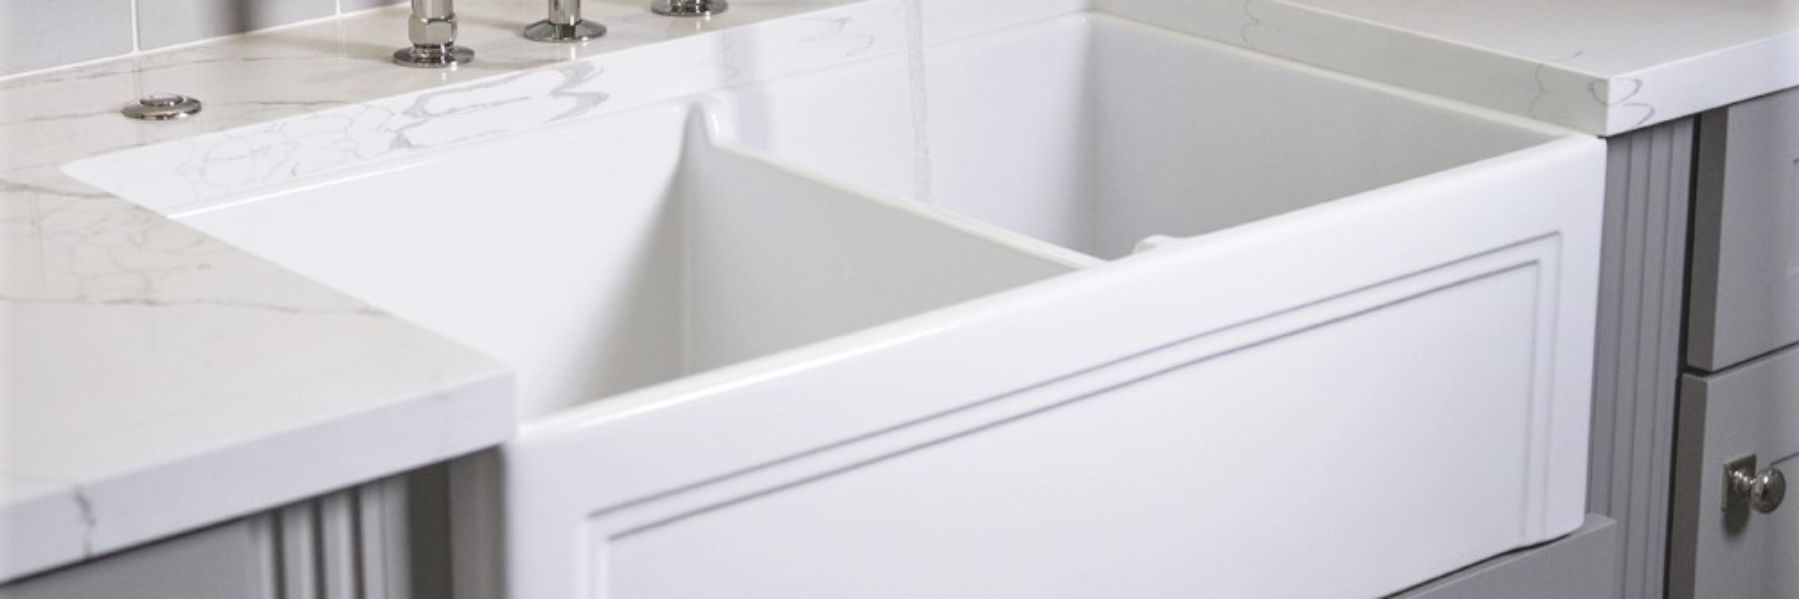 Brooks-Fireclay-Farmhouse-Kitchen-Sink